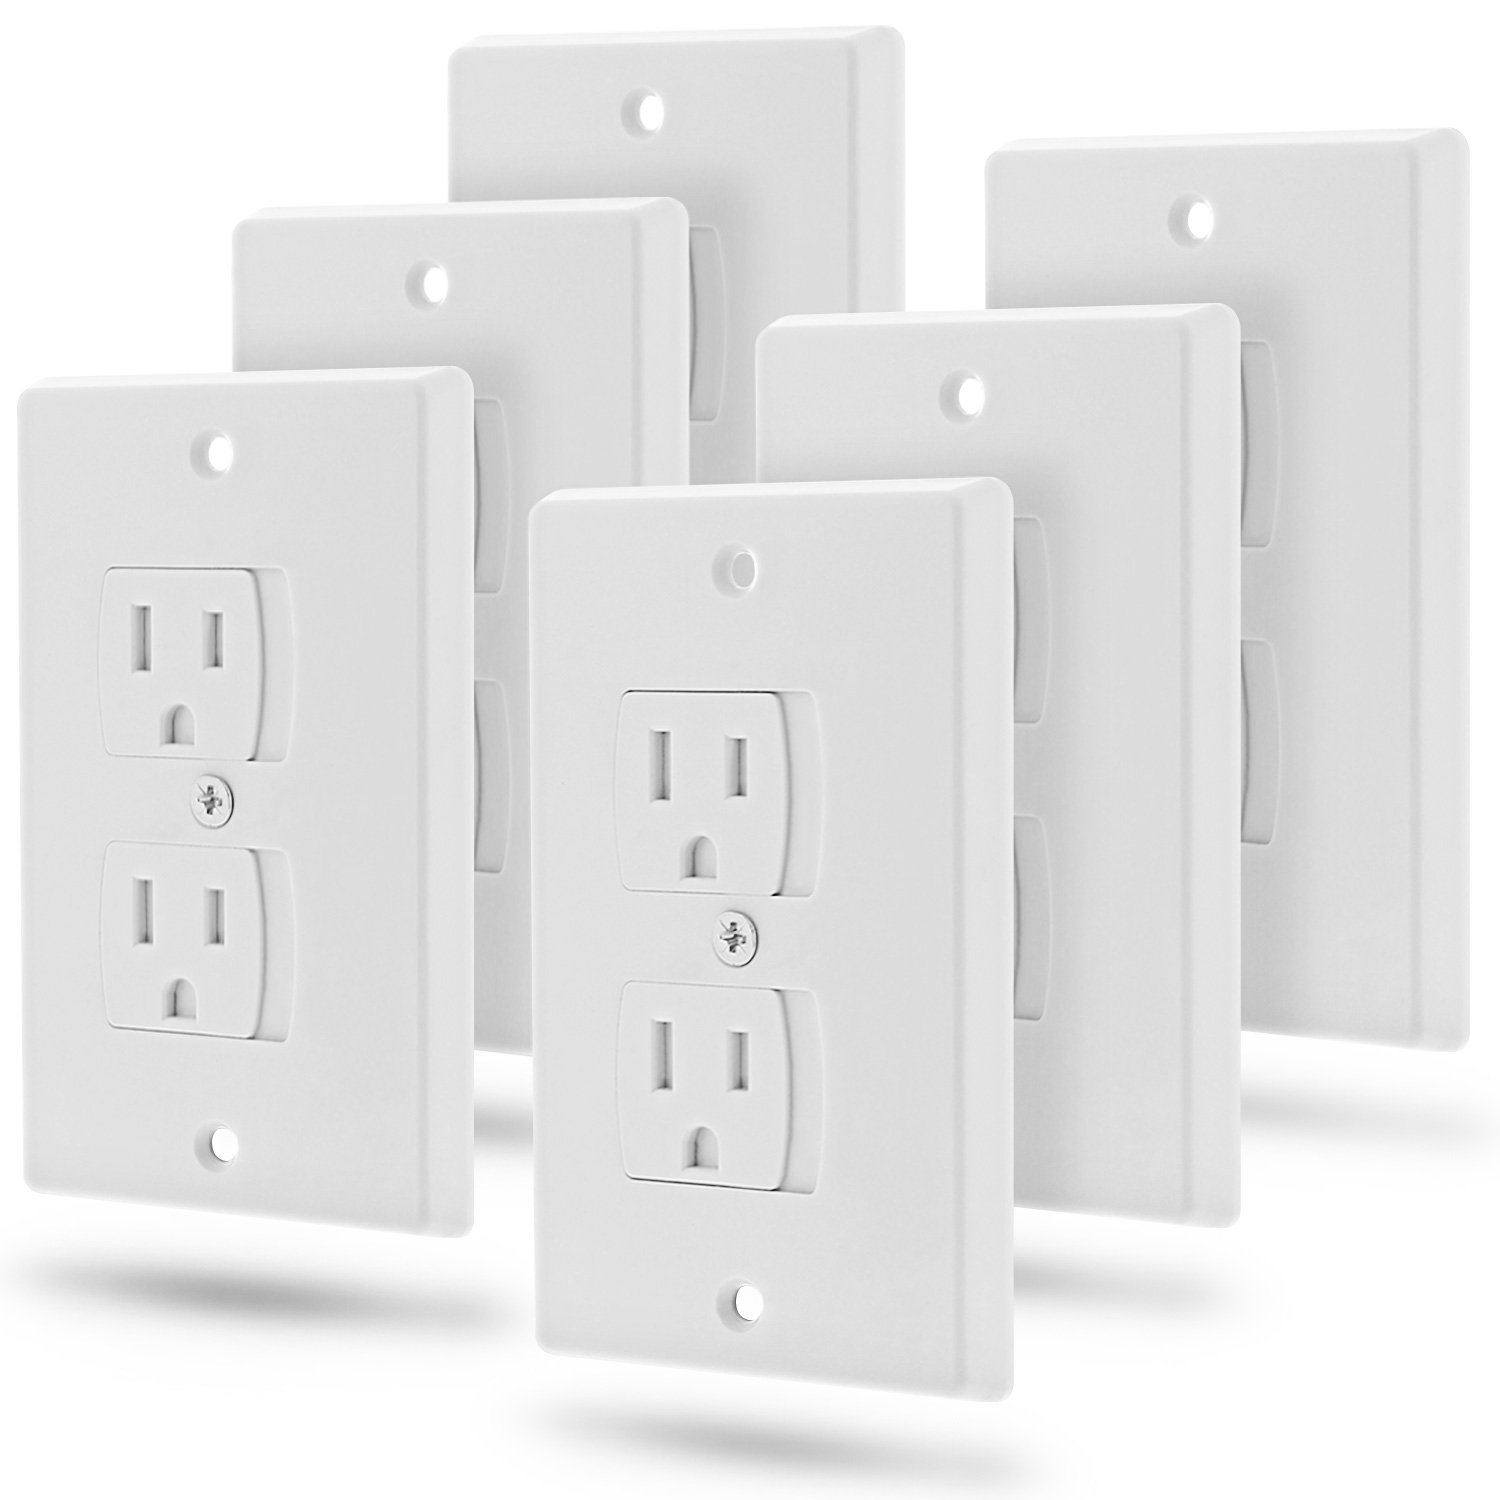 Self-Closing Outlet Cover (6 Pack), Fosmon Baby Guard Standard Wall Outlet Plate [Baby-Proofing | Child Safety] Electrical Socket Plugs Automatic Sliding Cap Cover - White